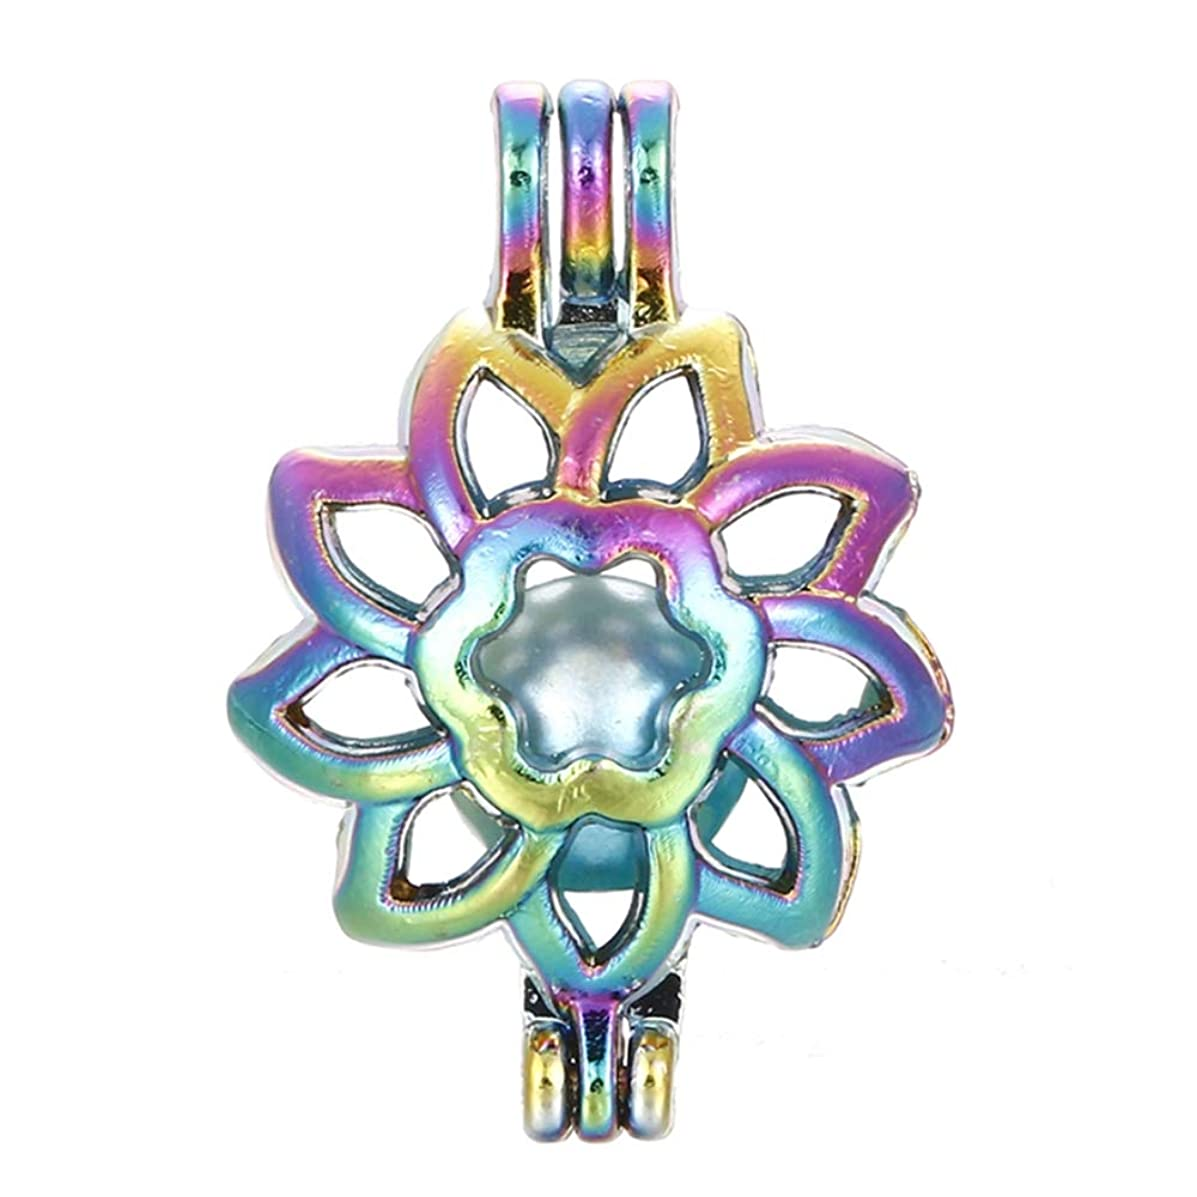 10pcs Rainbow Color Sunflower Pearl Cage Beads Cage Locket Pendant DIY Jewelry Making Accessories-for Oyster Pearls, Essential Oil Diffuser, Fun Gifts (Sunflower)